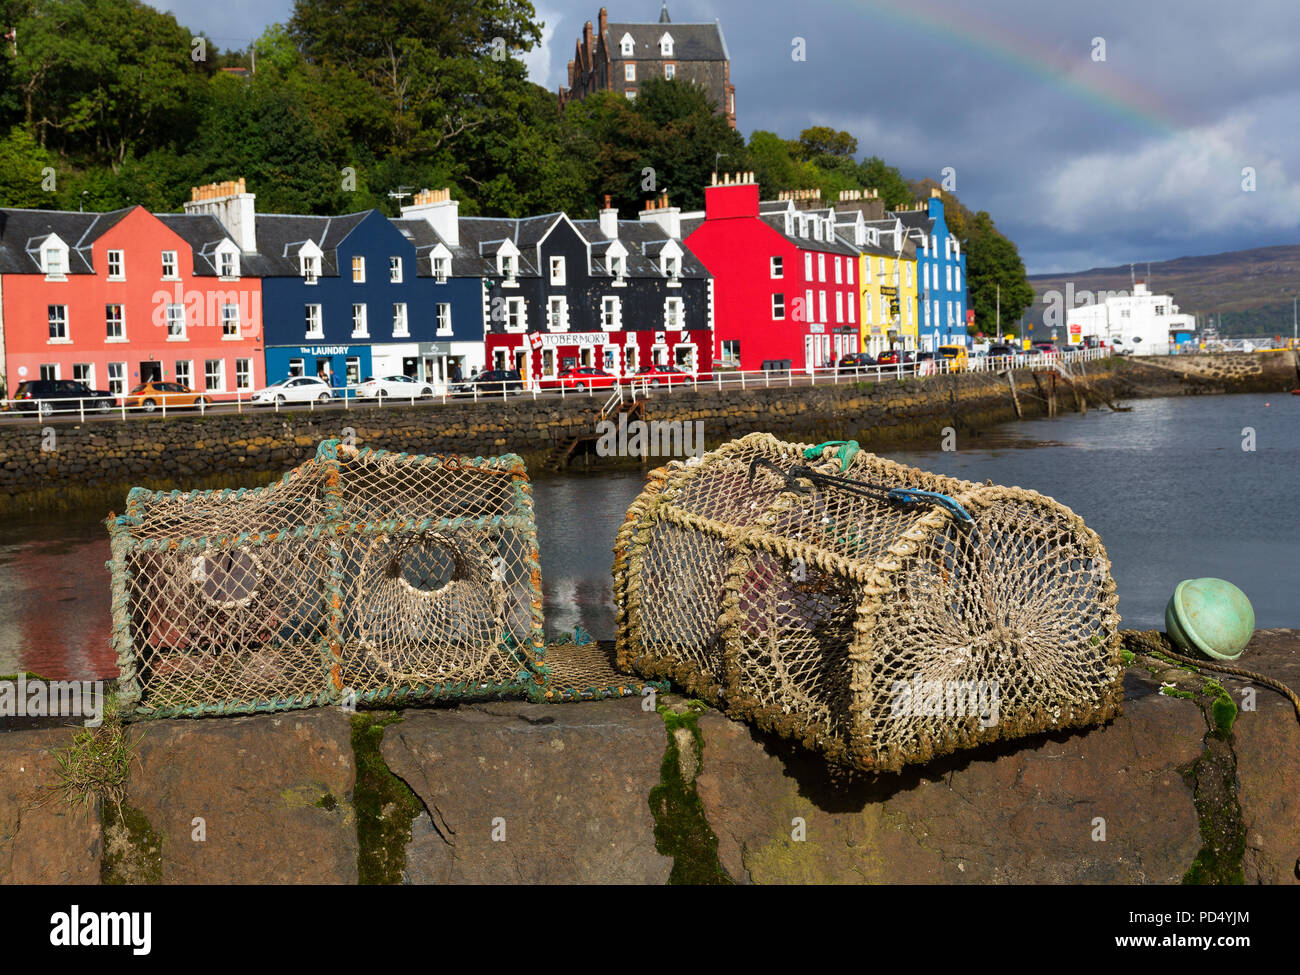 Quaint multi colored building fishing village in Tobermory, Isle of Mull, Inner Herbrides, Scotland, UK - Stock Image